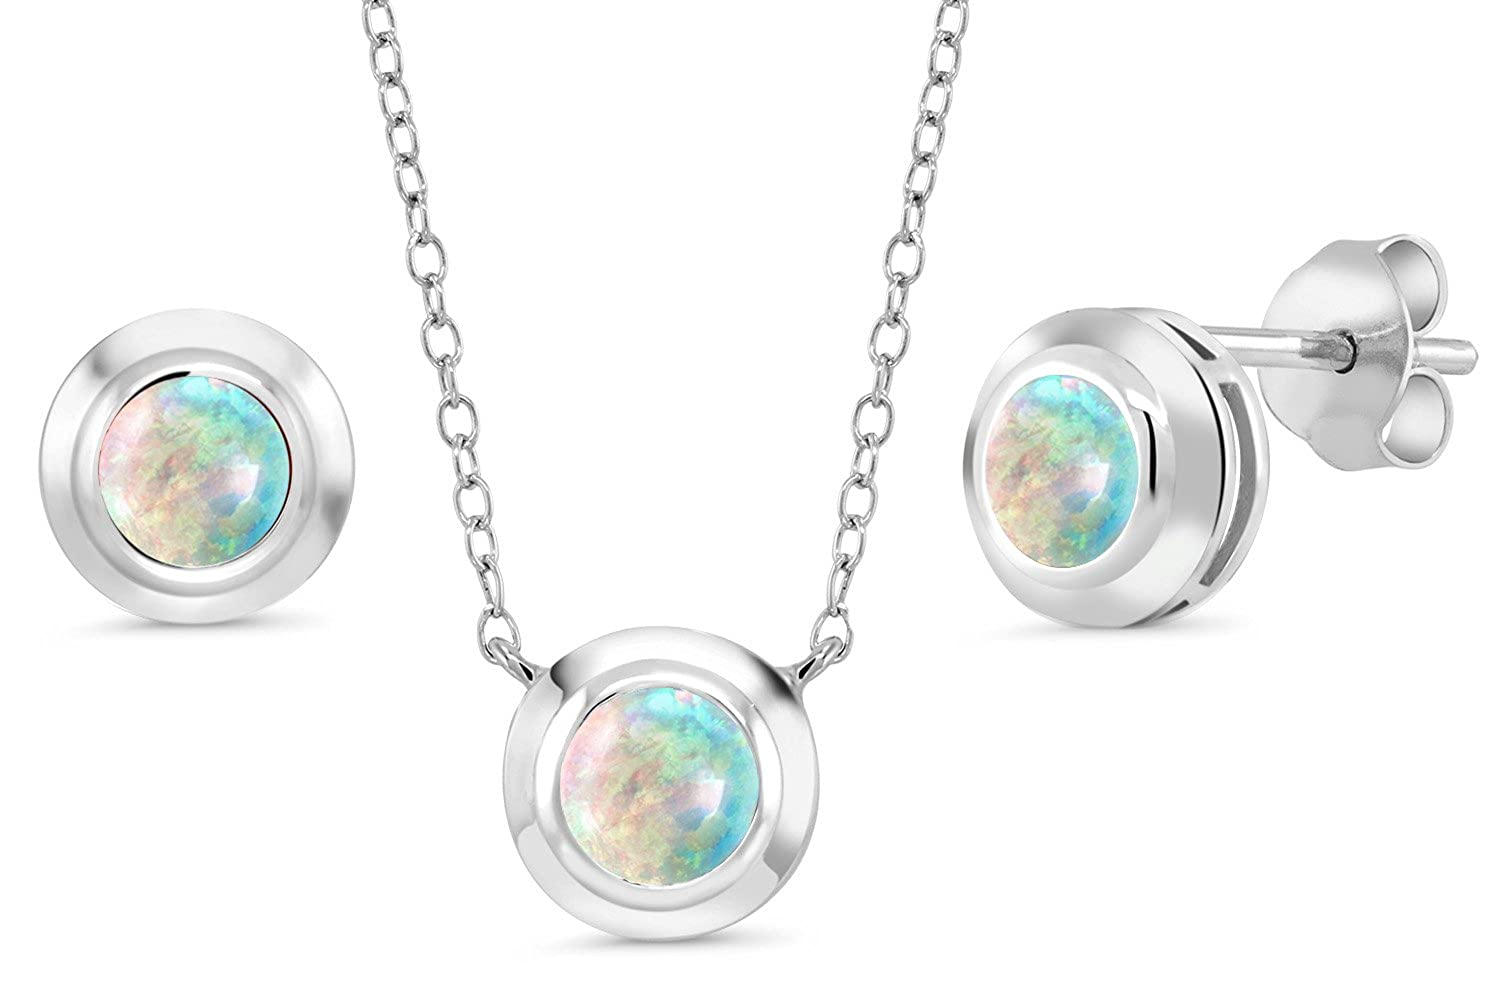 1.75 Ct Round Cabochon White Simulated Opal 925 Silver Pendant Earrings Set